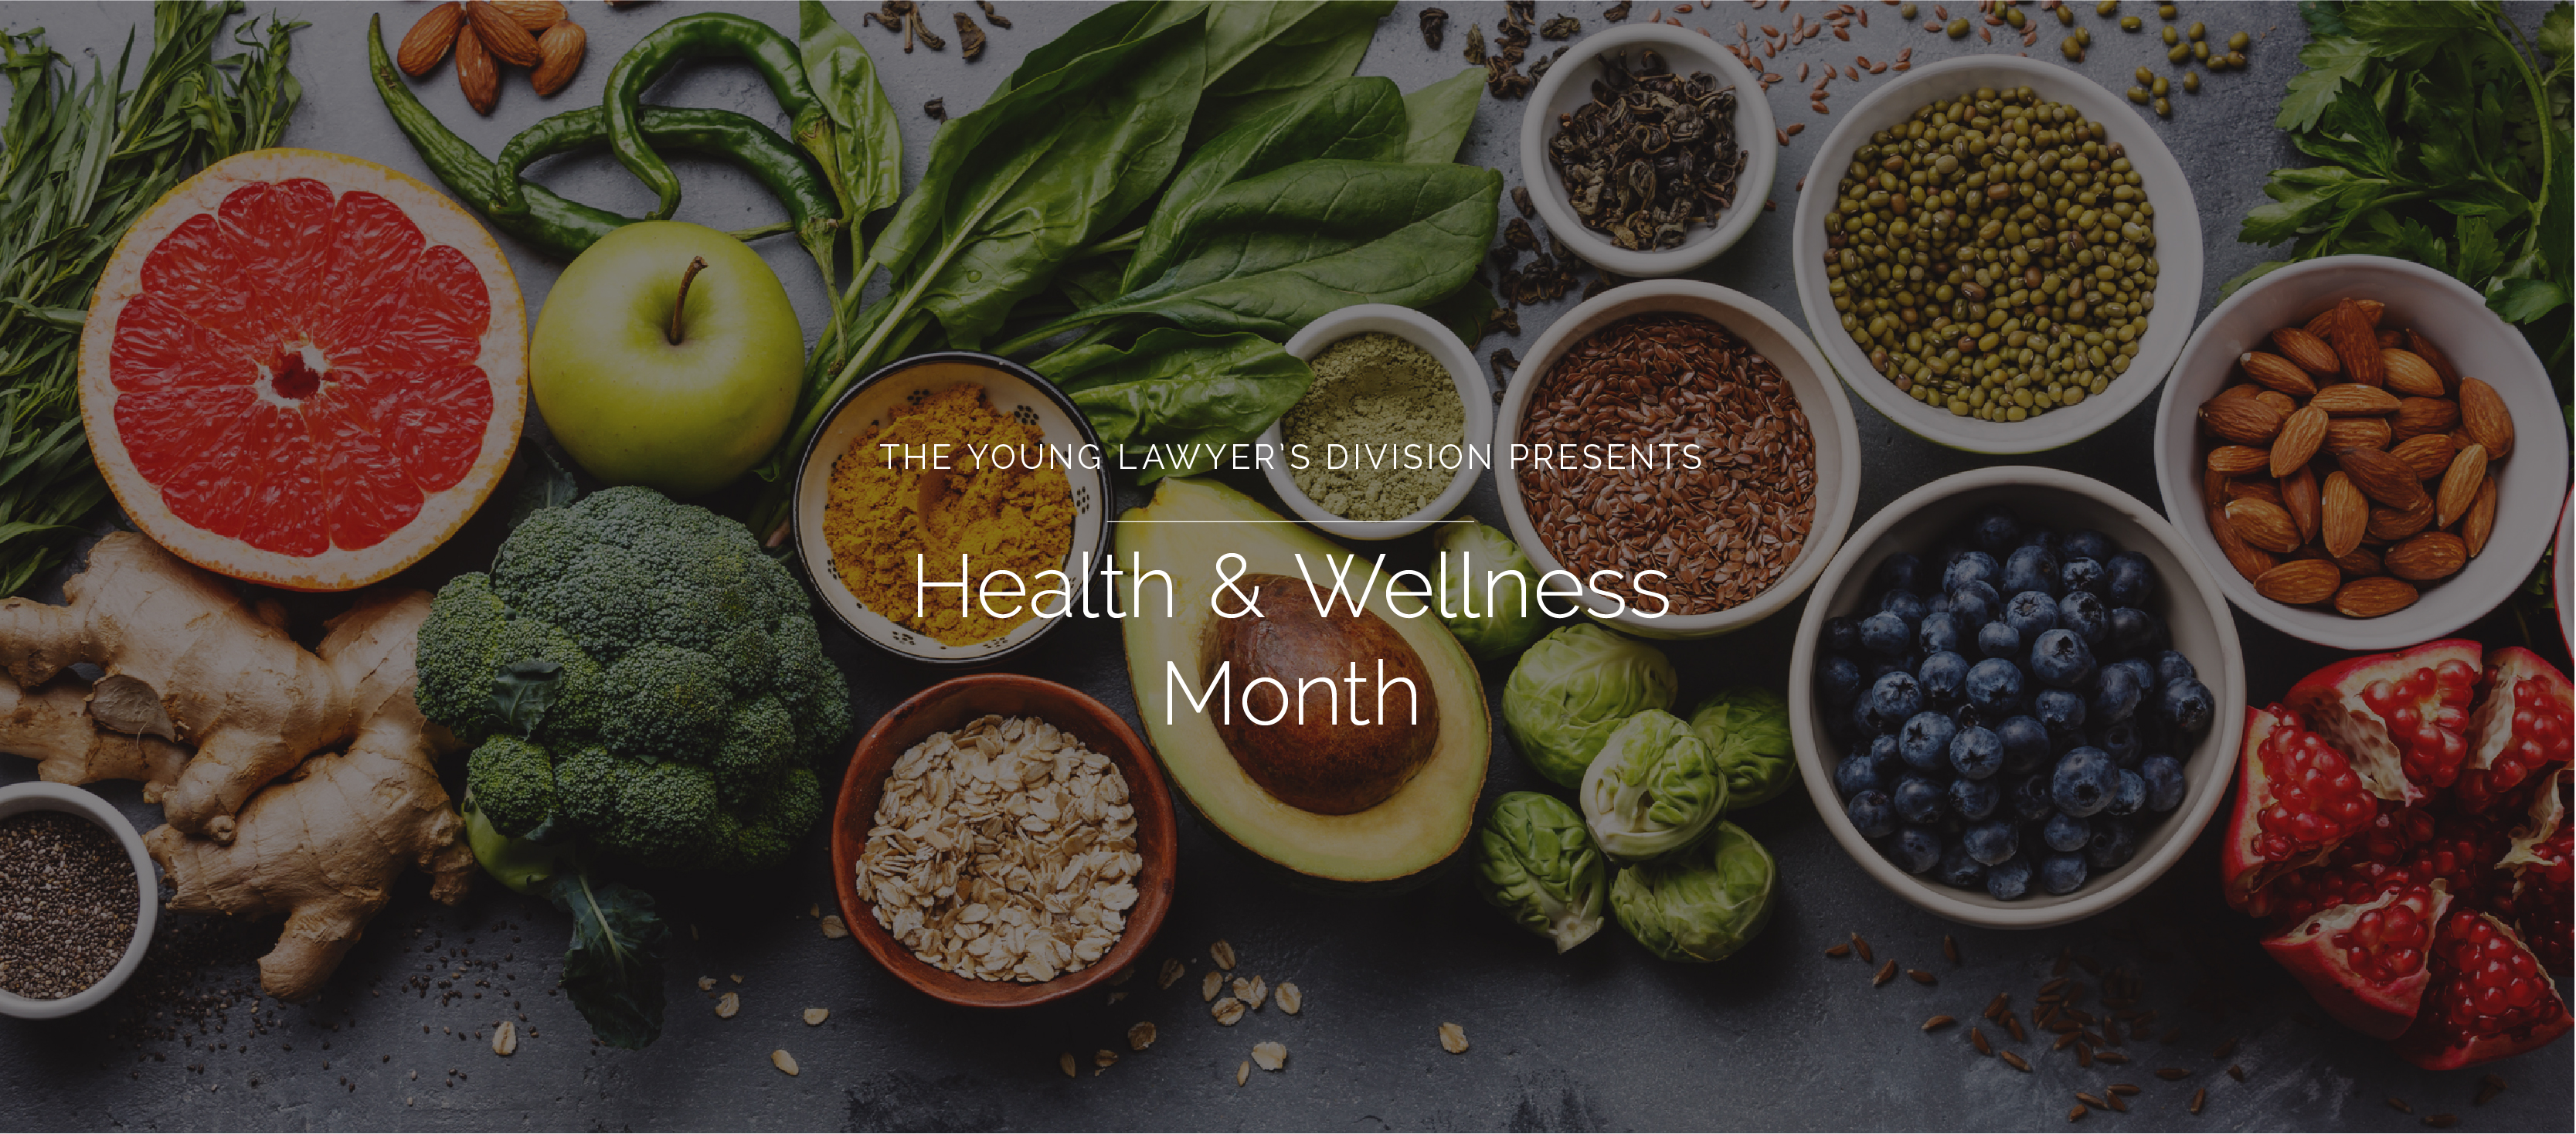 FLAYLD Health & Wellness Month, picturing healthy foods in the background